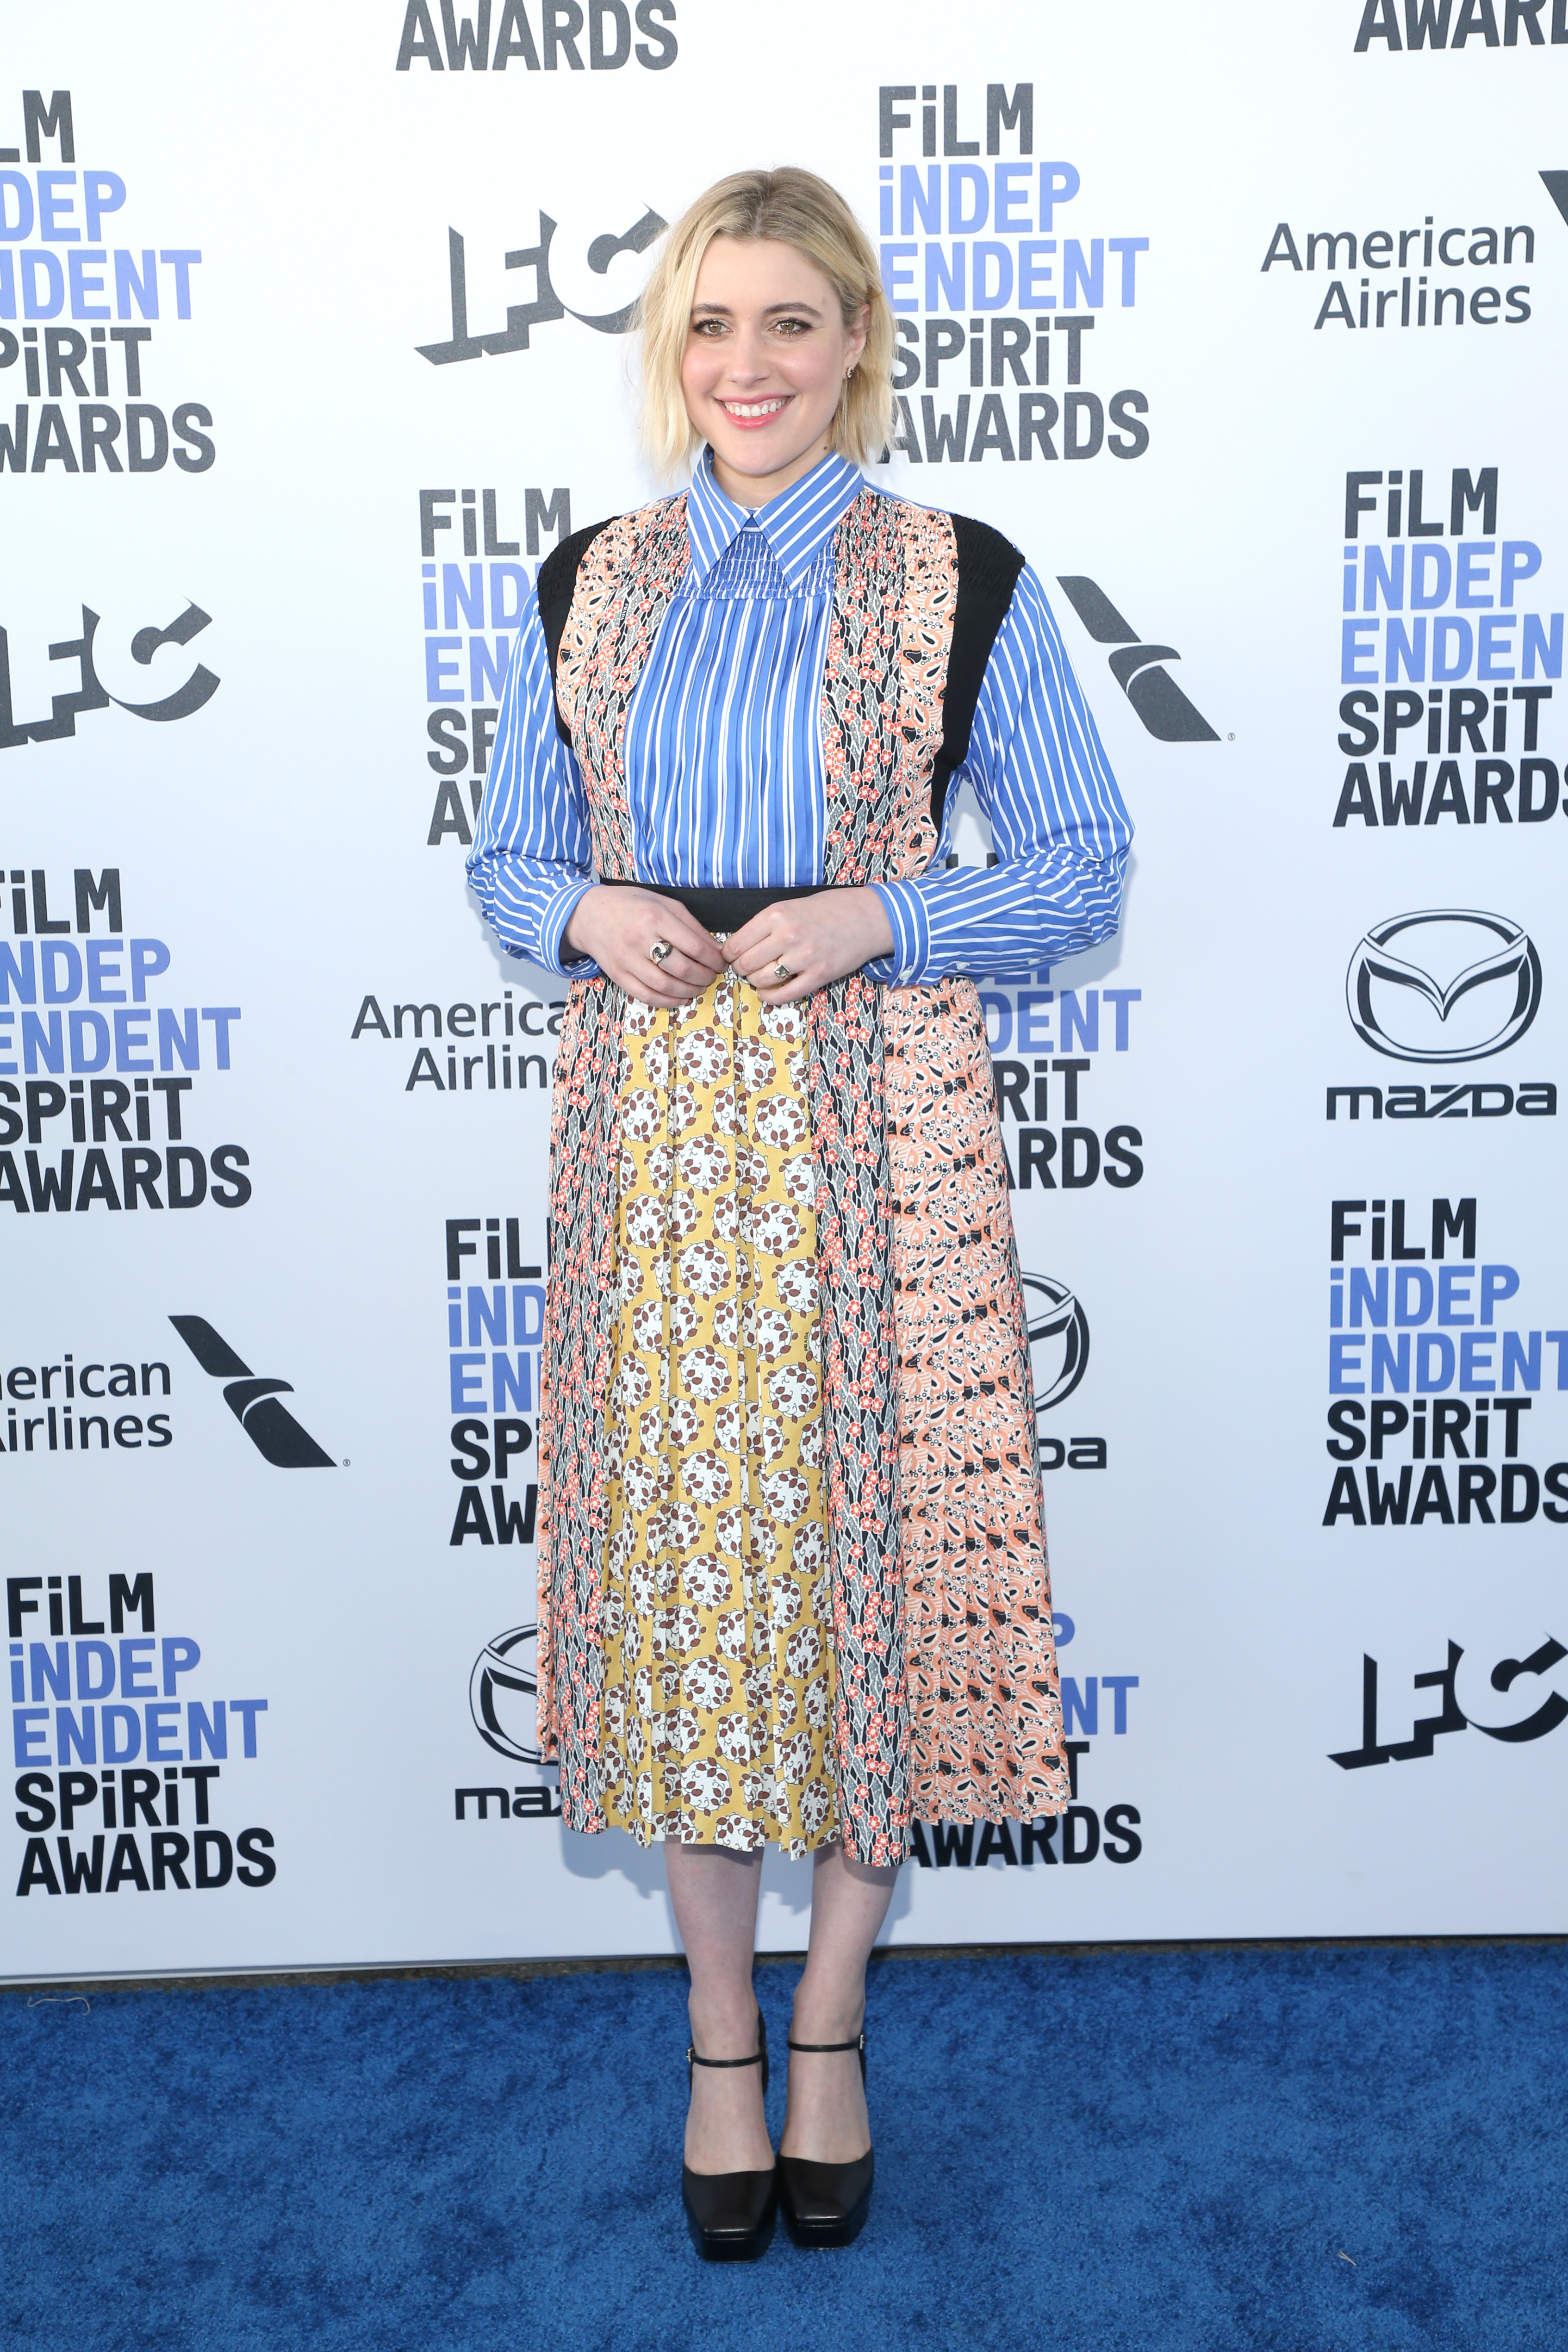 Greta Gerwig at an event for 35th Film Independent Spirit Awards (2020)